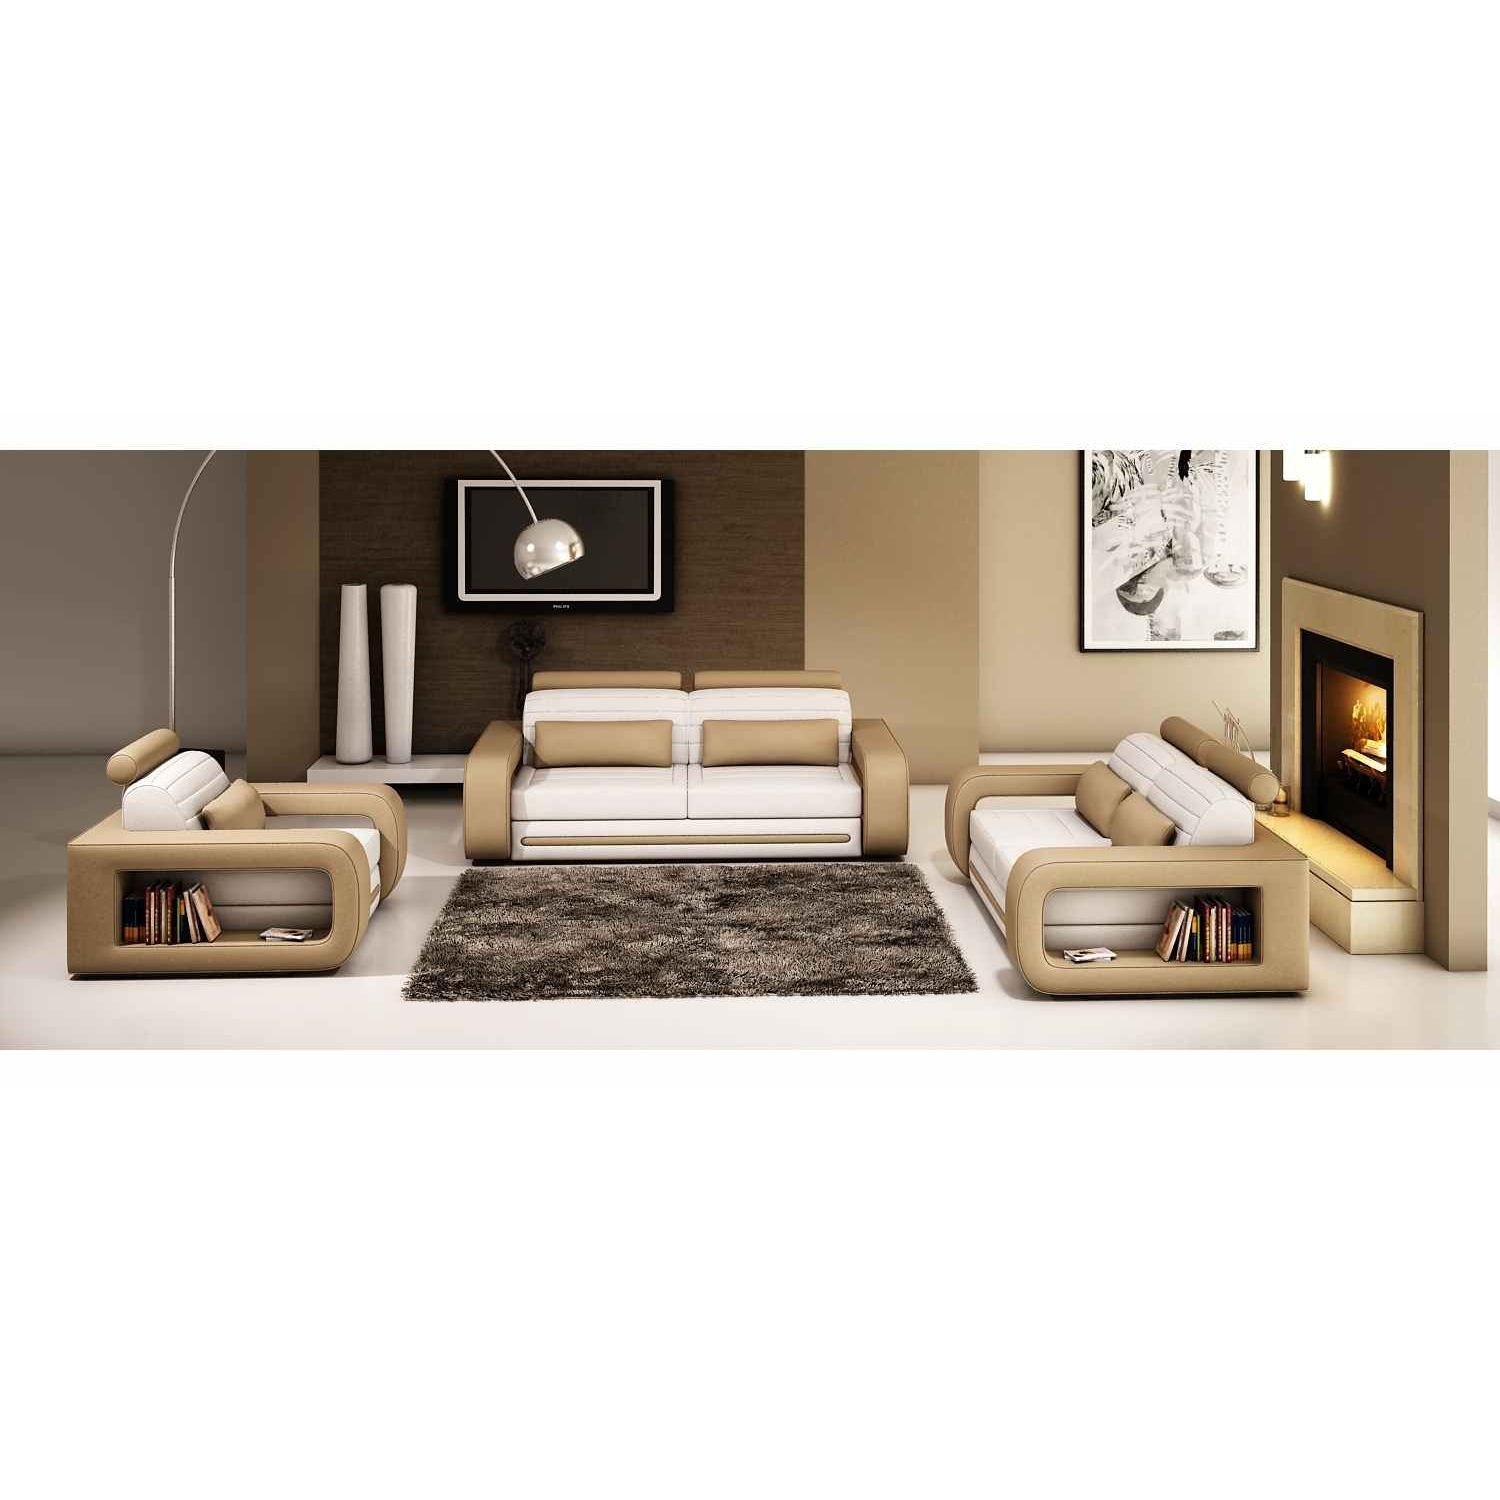 deco in paris canape 3 2 1 places en cuir blanc et. Black Bedroom Furniture Sets. Home Design Ideas